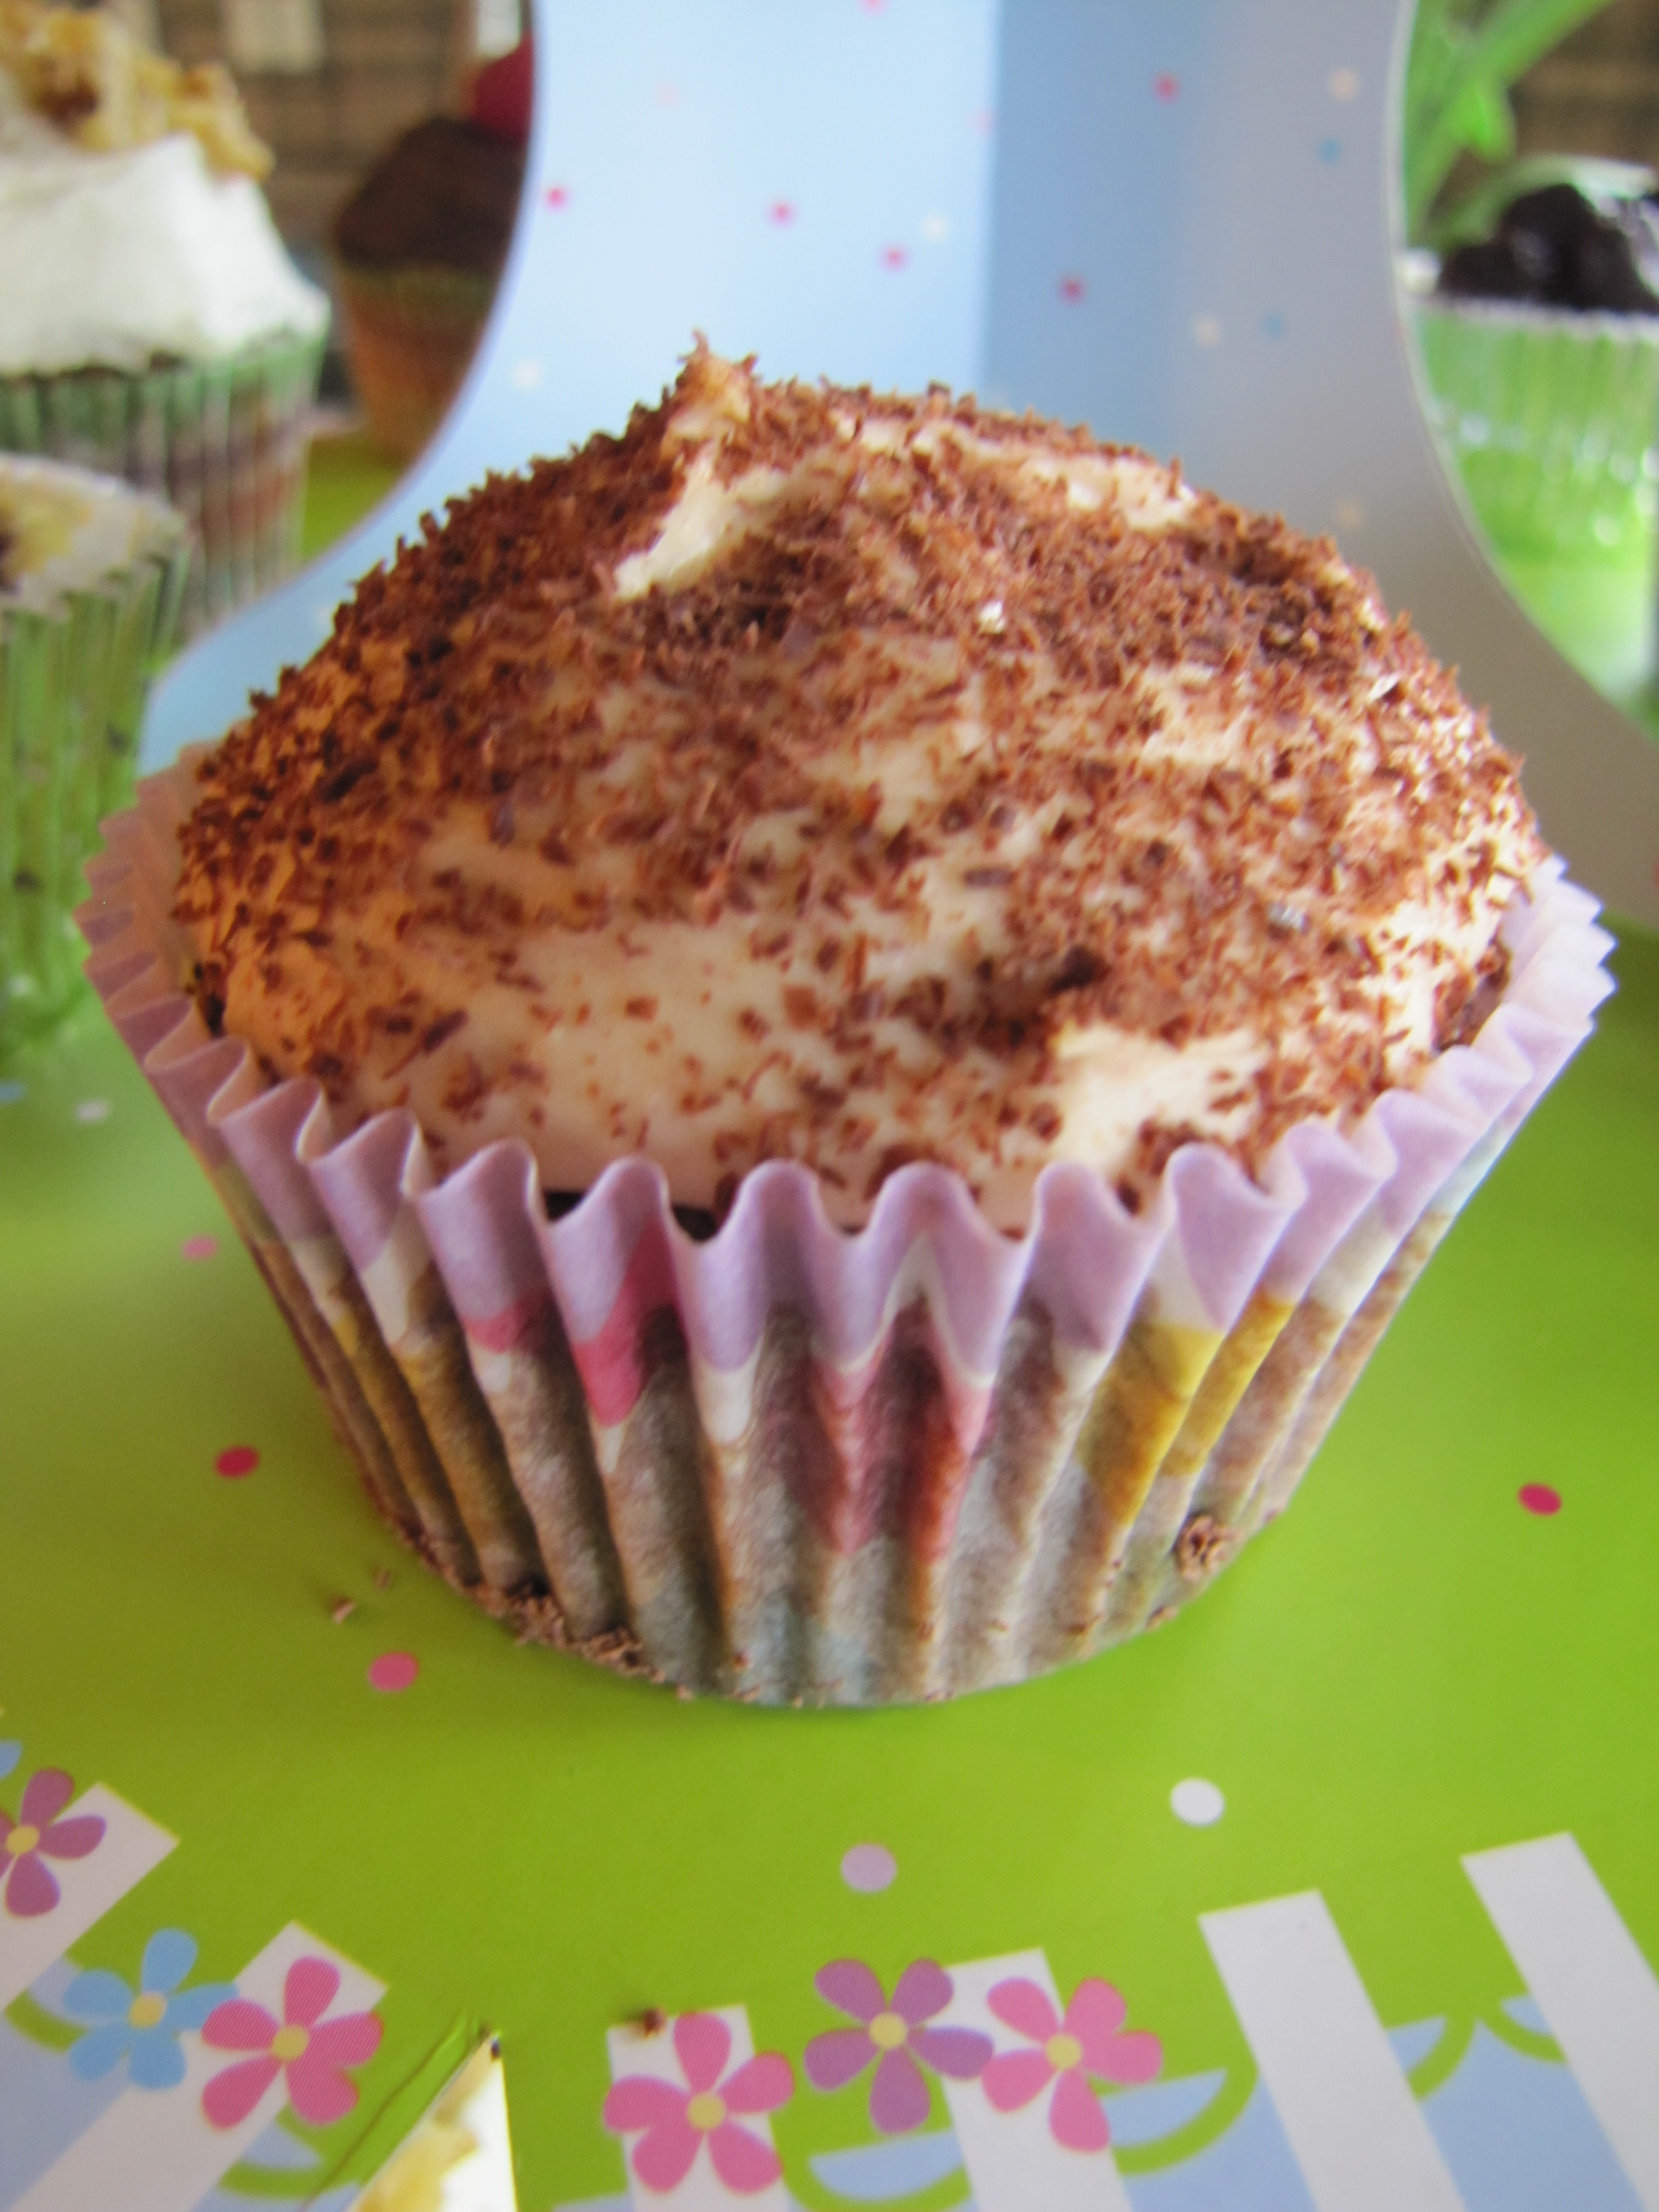 Cupcakes cupcakes cupcakes simply living healthy for Chocolate fudge cream cheese frosting